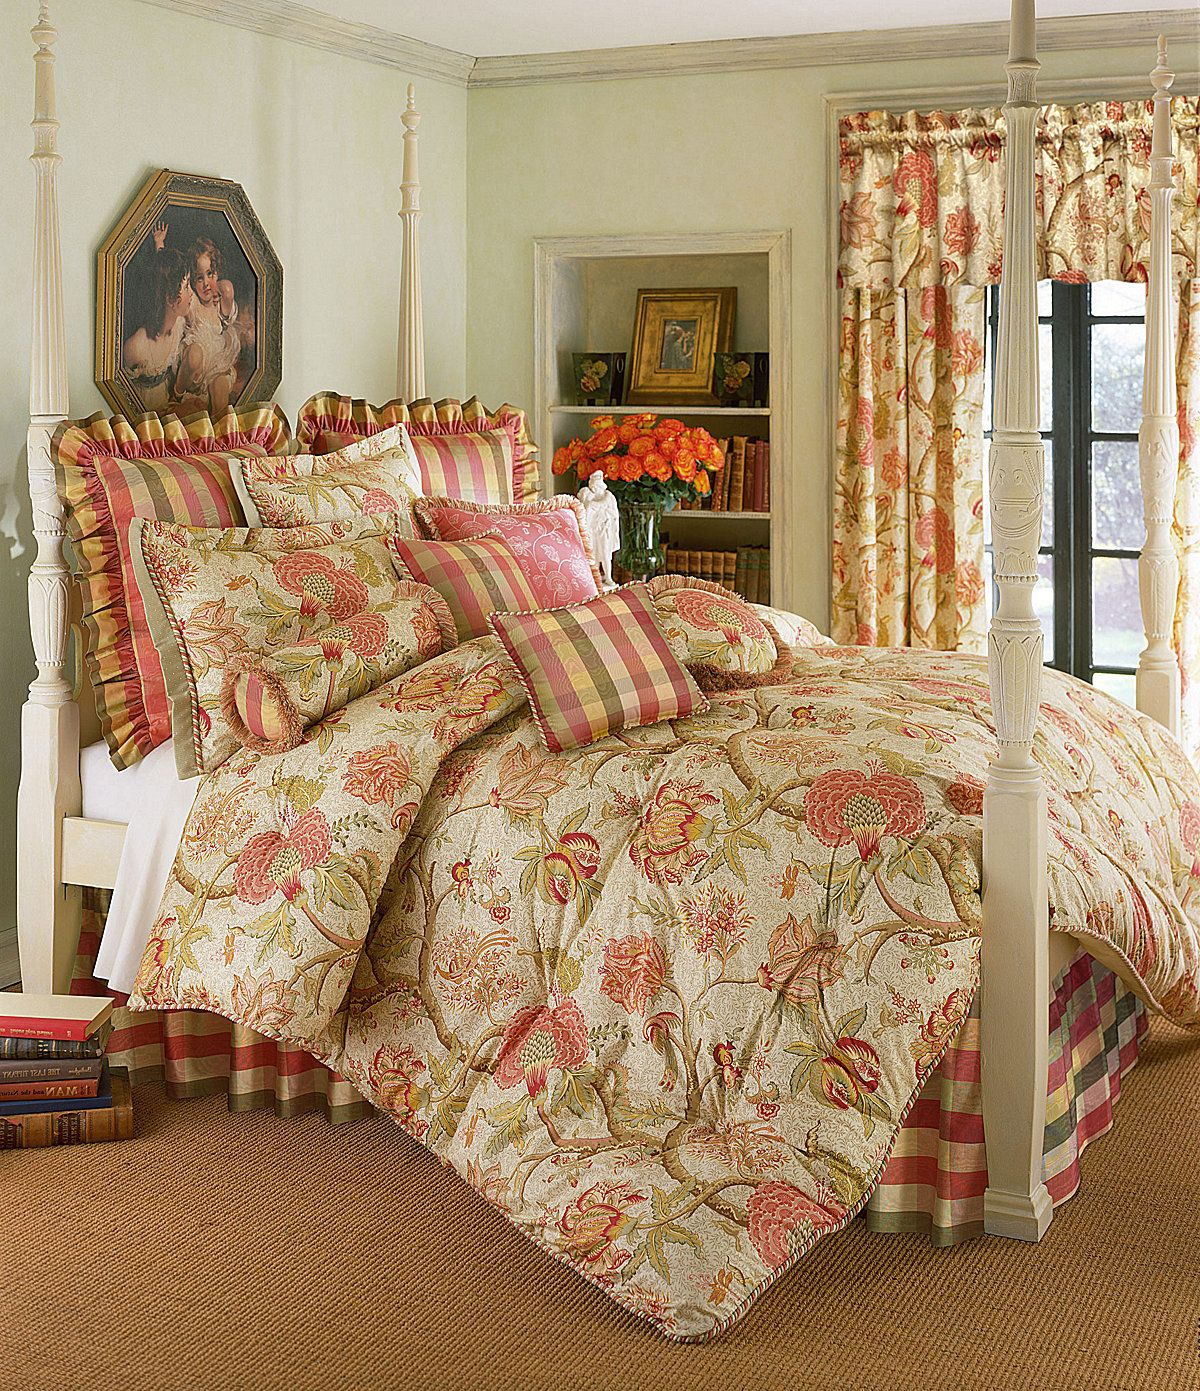 Rose Tree Summerton Bed frame feet, Bed, Pretty bedding